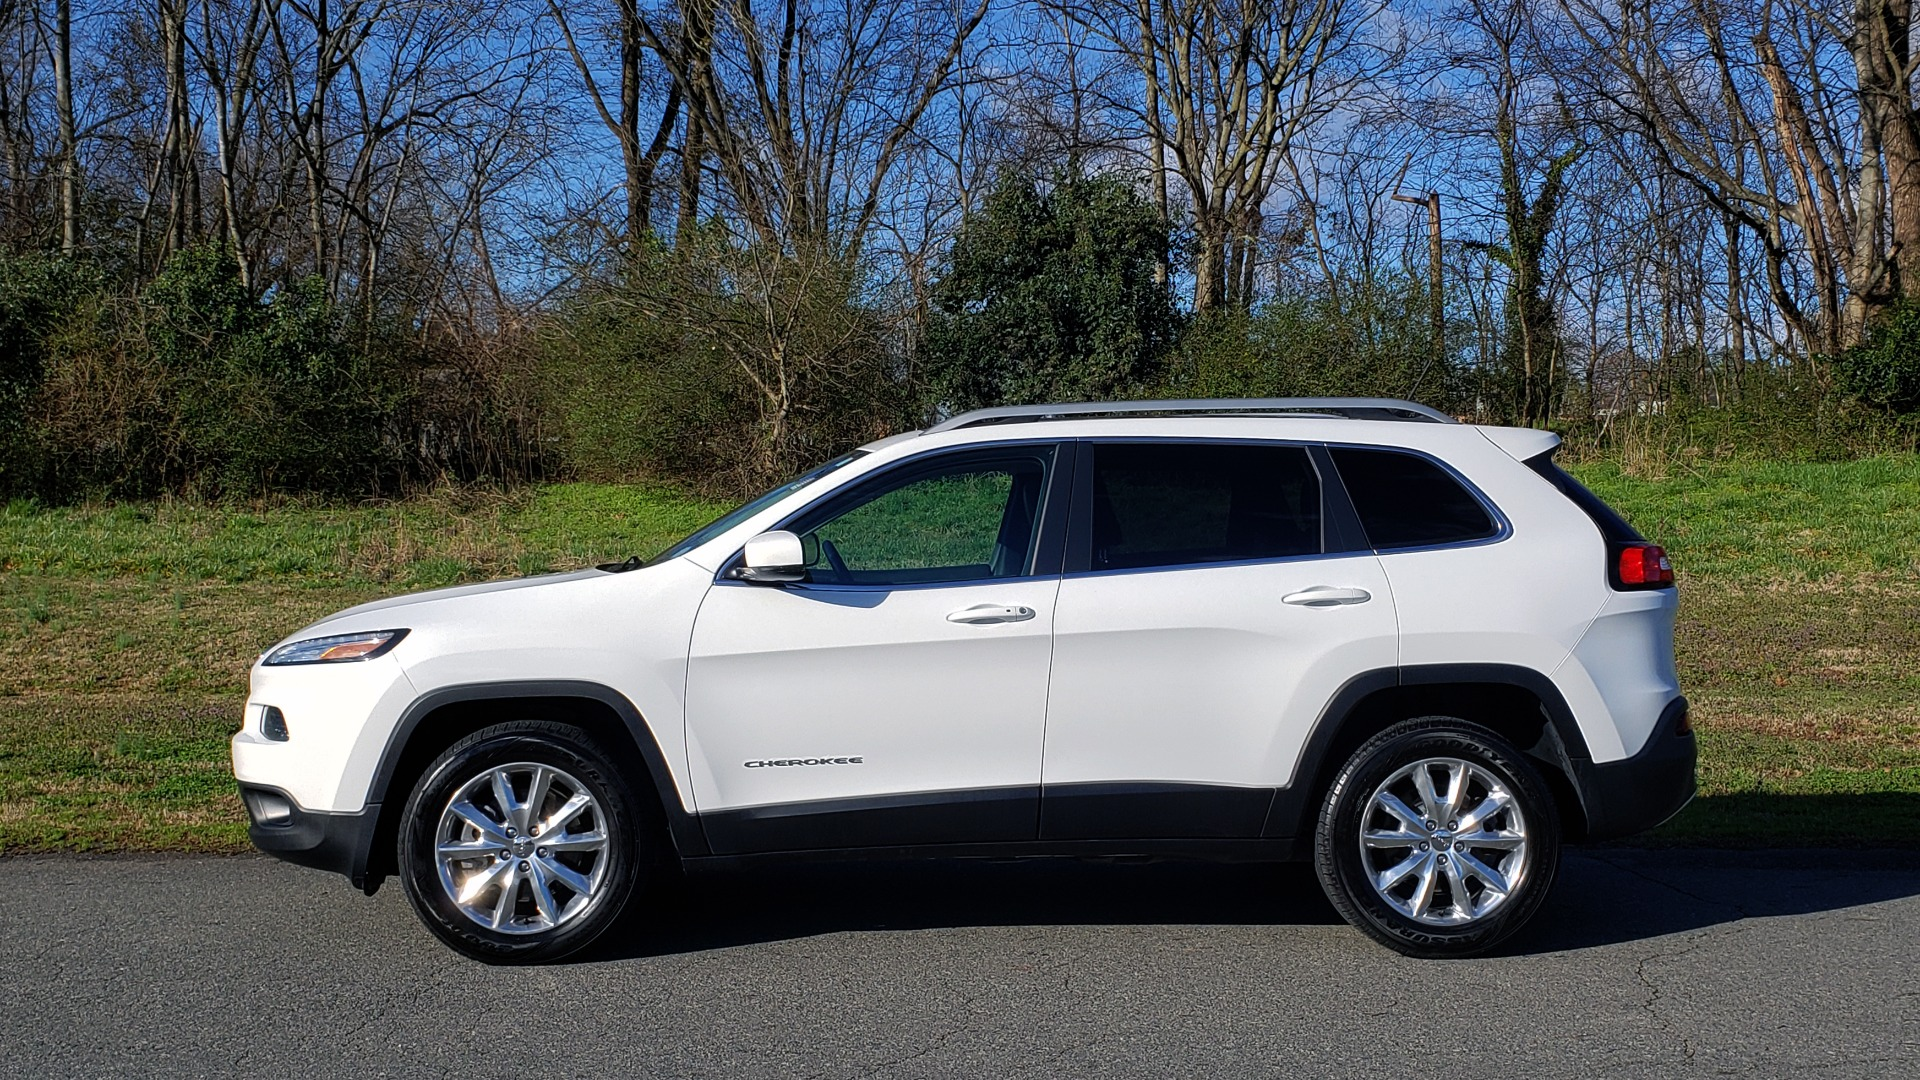 Used 2014 Jeep CHEROKEE LIMITED 4WD / 3.2L V6 / 9SPD AUTO / DUAL-SUNROOF / TOW for sale $18,995 at Formula Imports in Charlotte NC 28227 2